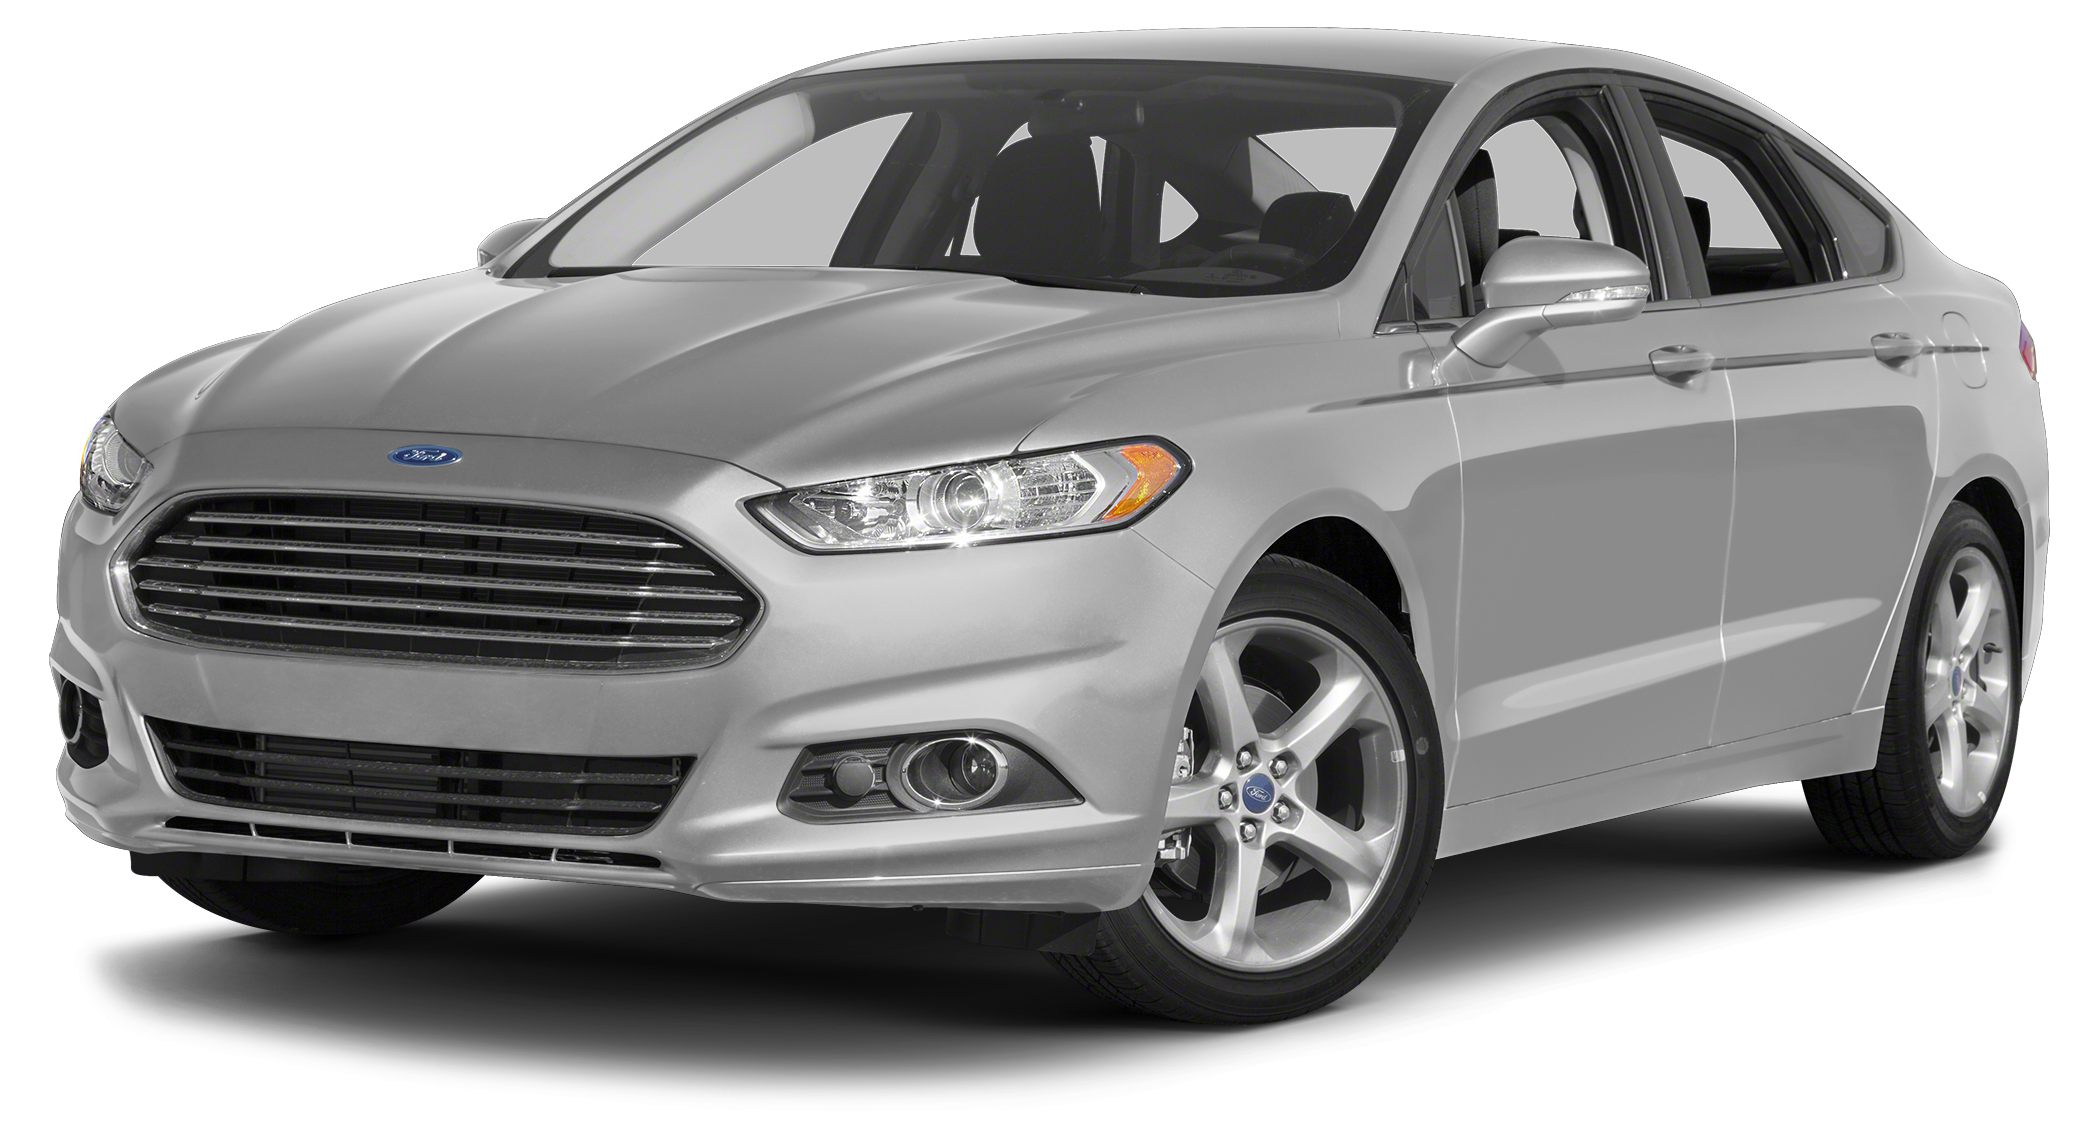 2013 Ford Fusion SE Low milage rocking sound system and a very clean interior are just a few thin